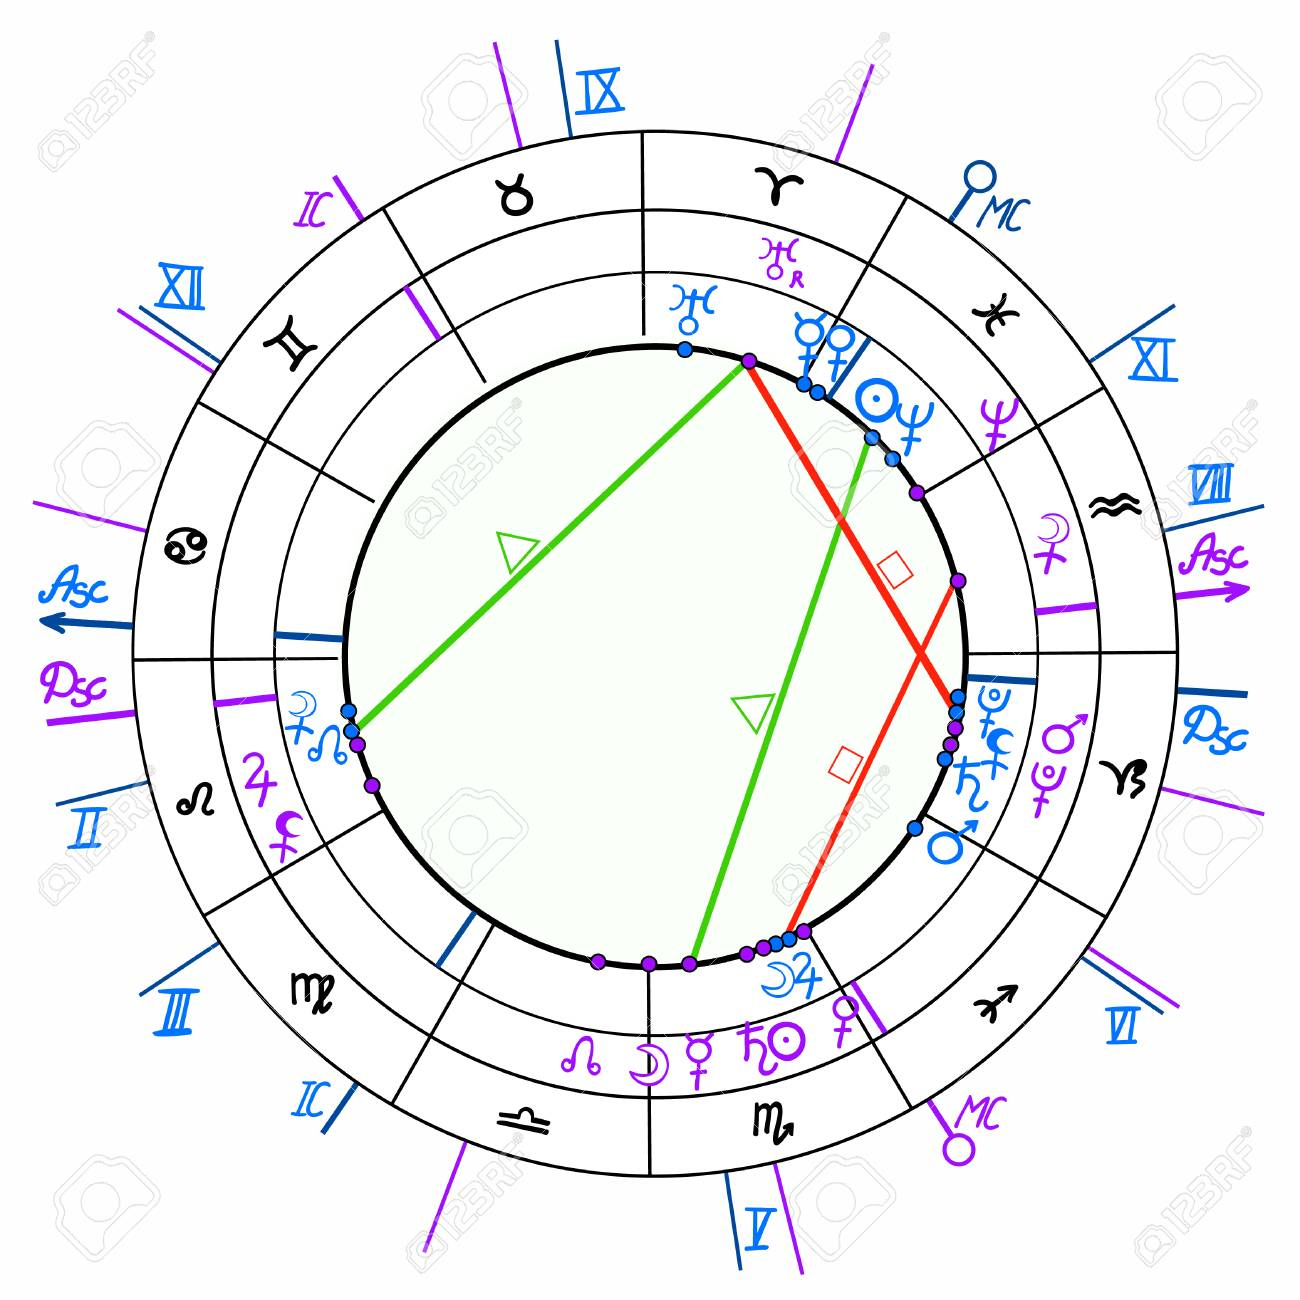 Synastry natal astrological chart, zodiac signs vector illustration